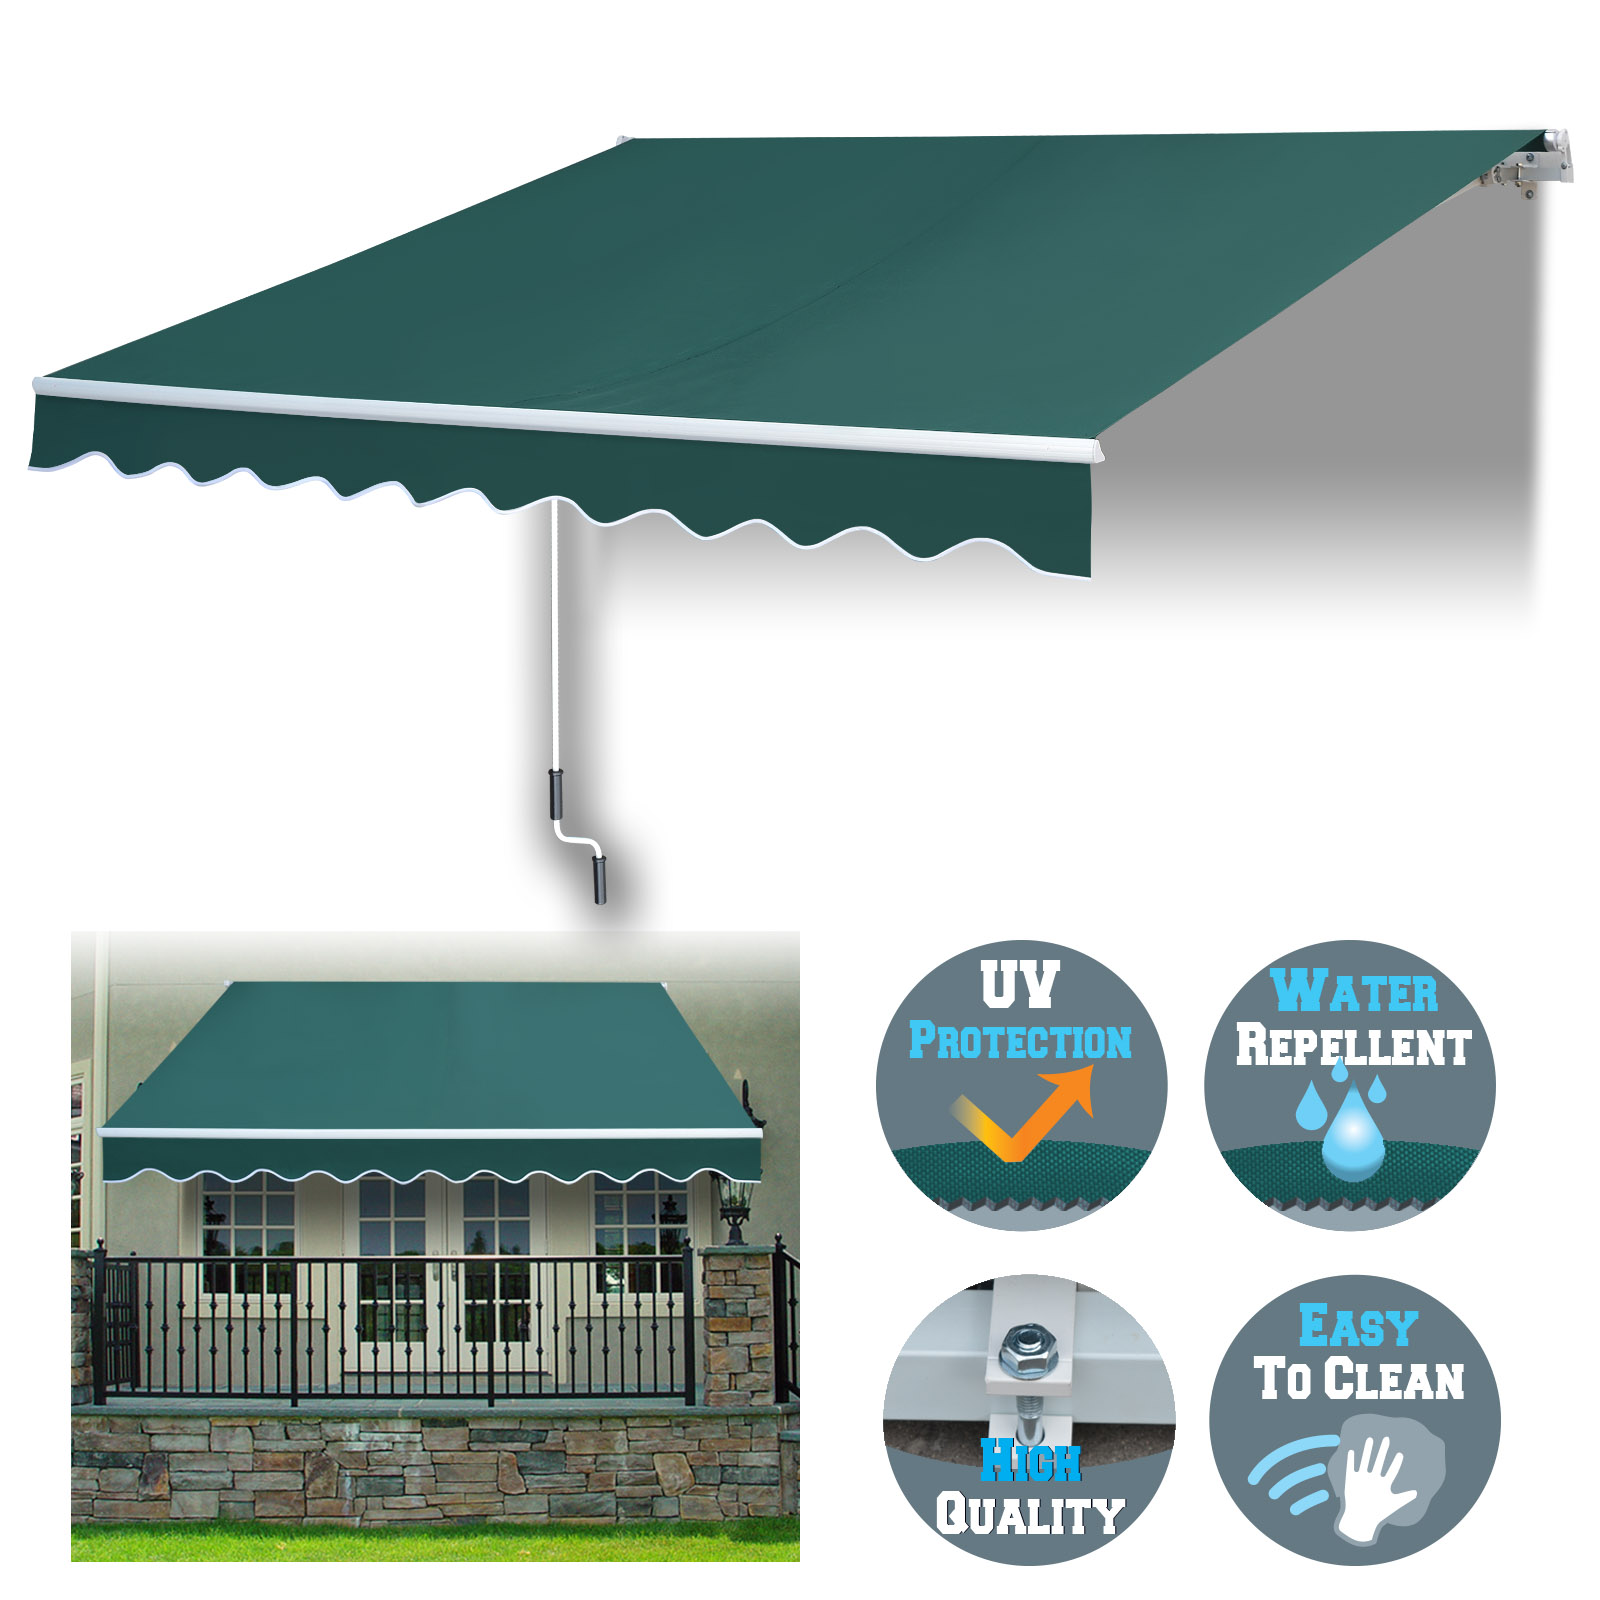 Sunrise 8' x 6.6' Manual Retractable Patio Deck Awning Cover, Sunshade Canopy Only, (Blue with White)